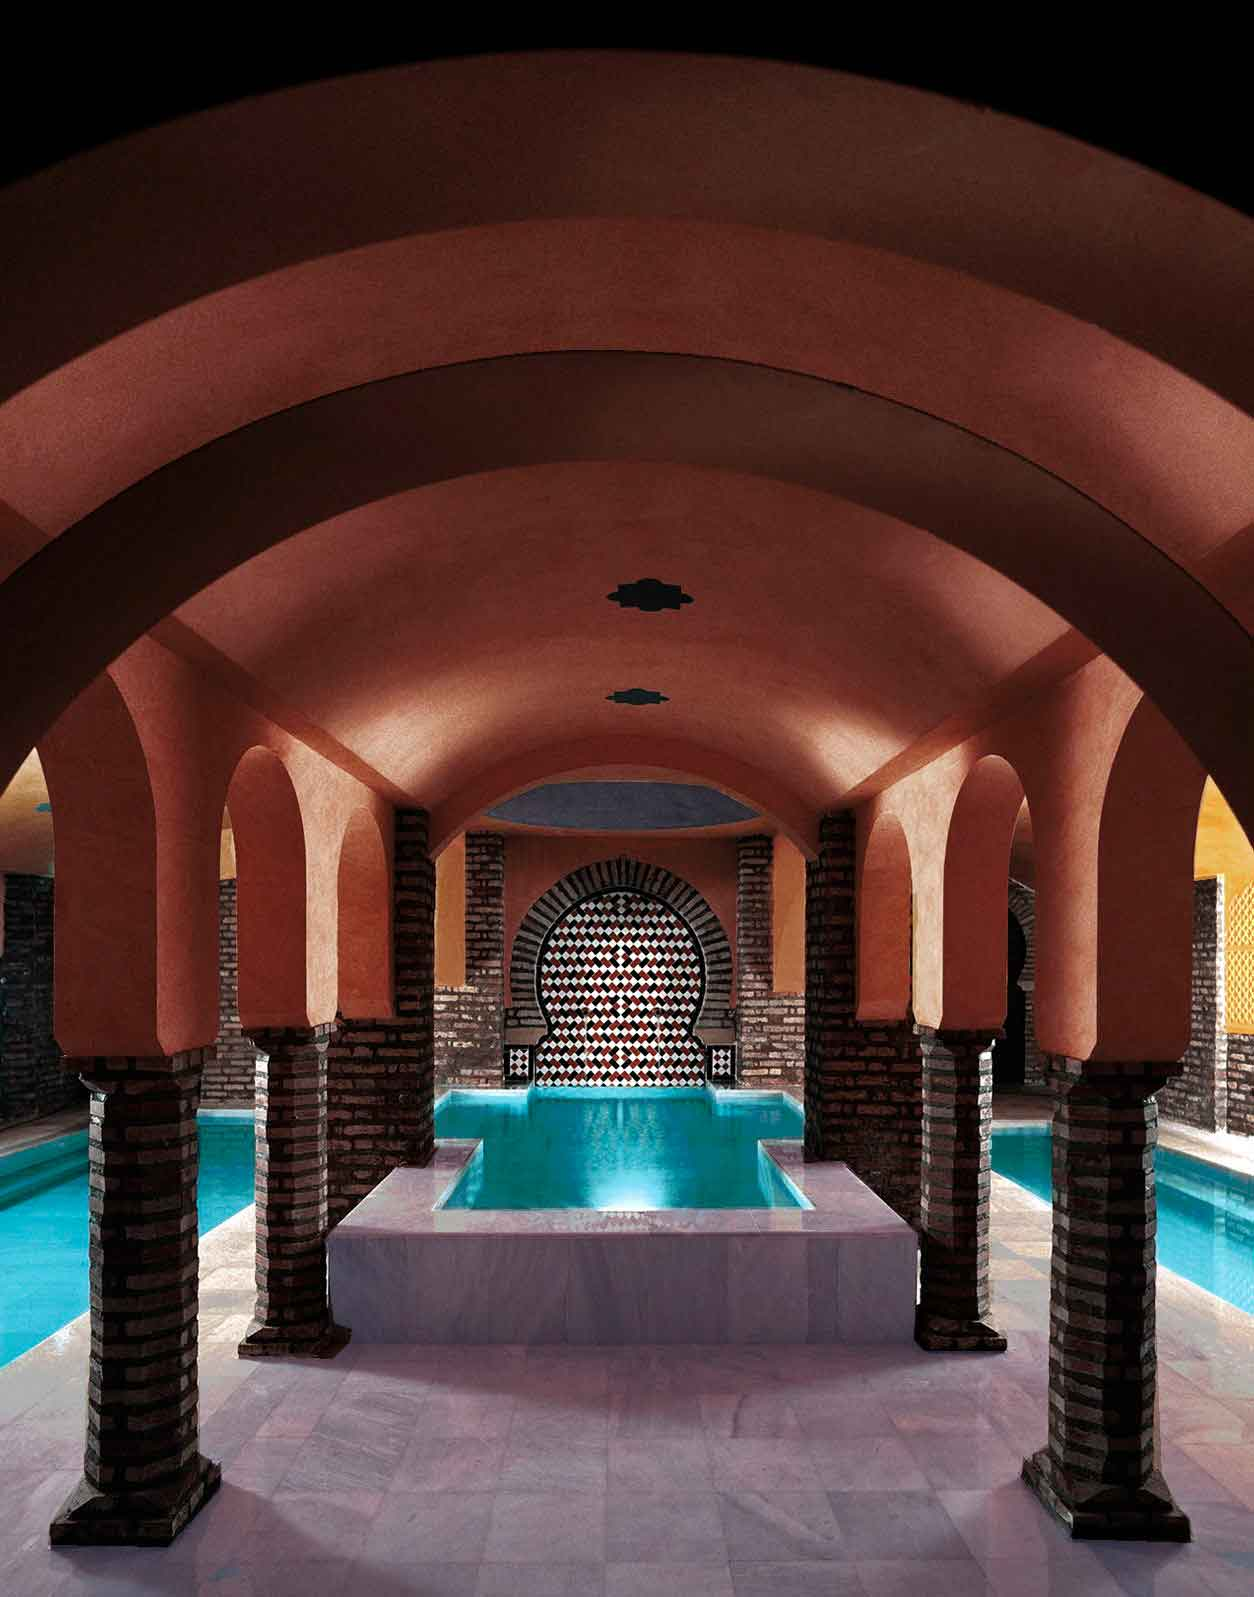 Visit to the Alhambra and Hammam Arab Baths